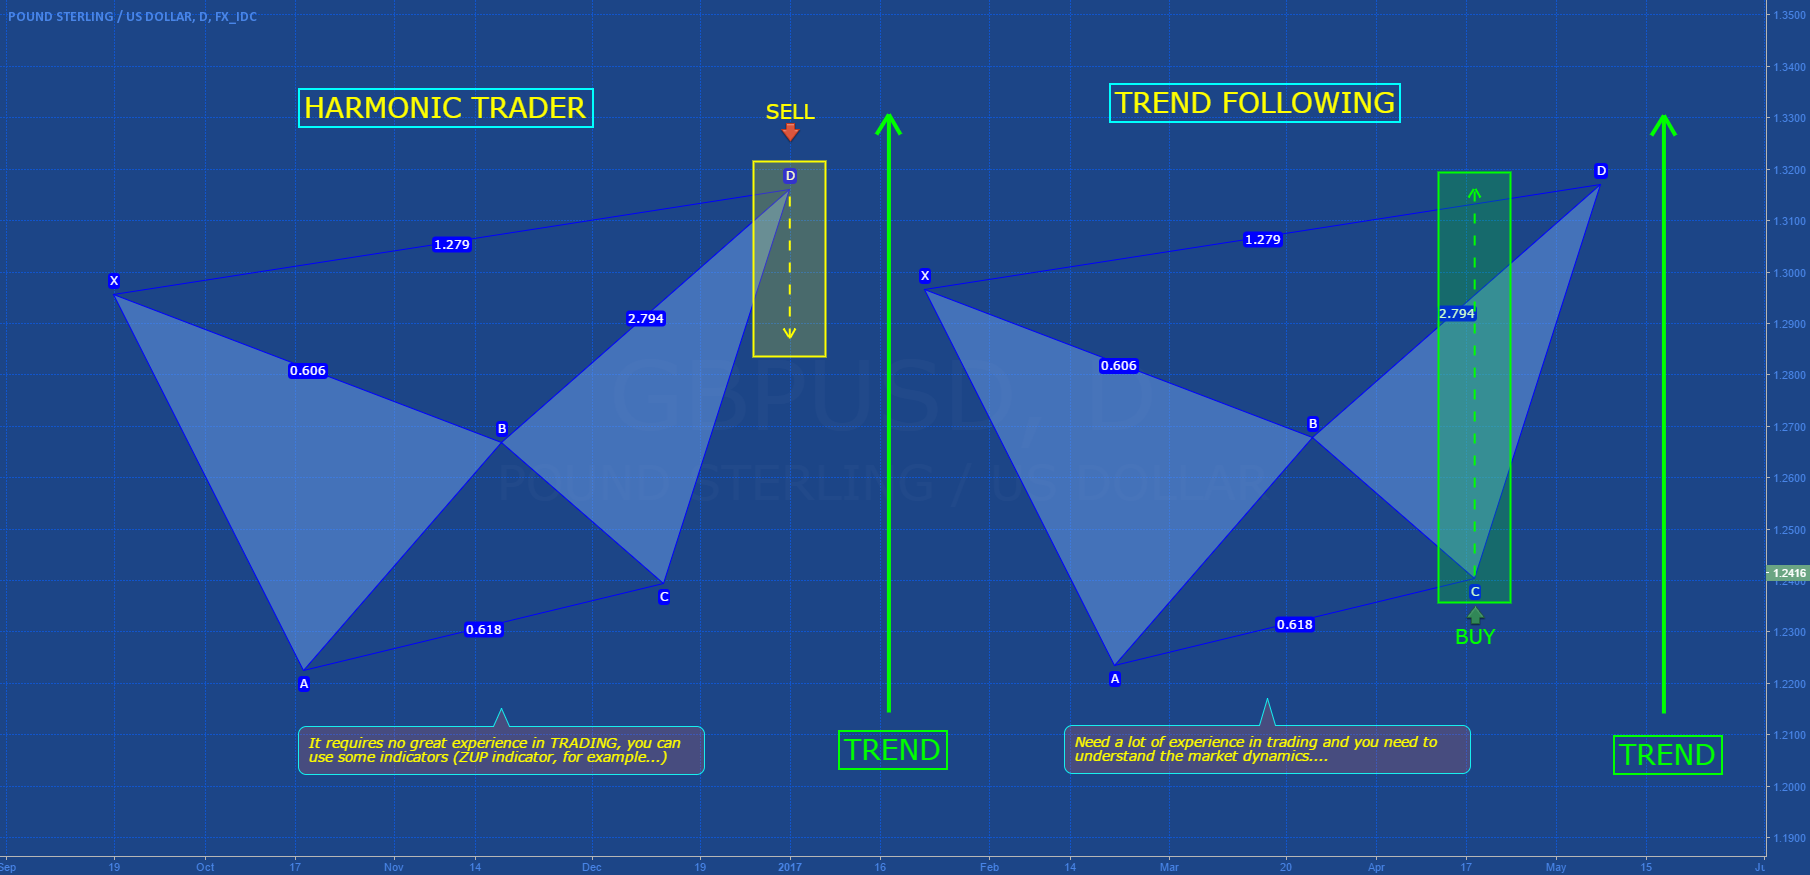 HARMONIC TRADER vs TREND FOLLOWING (Part I)